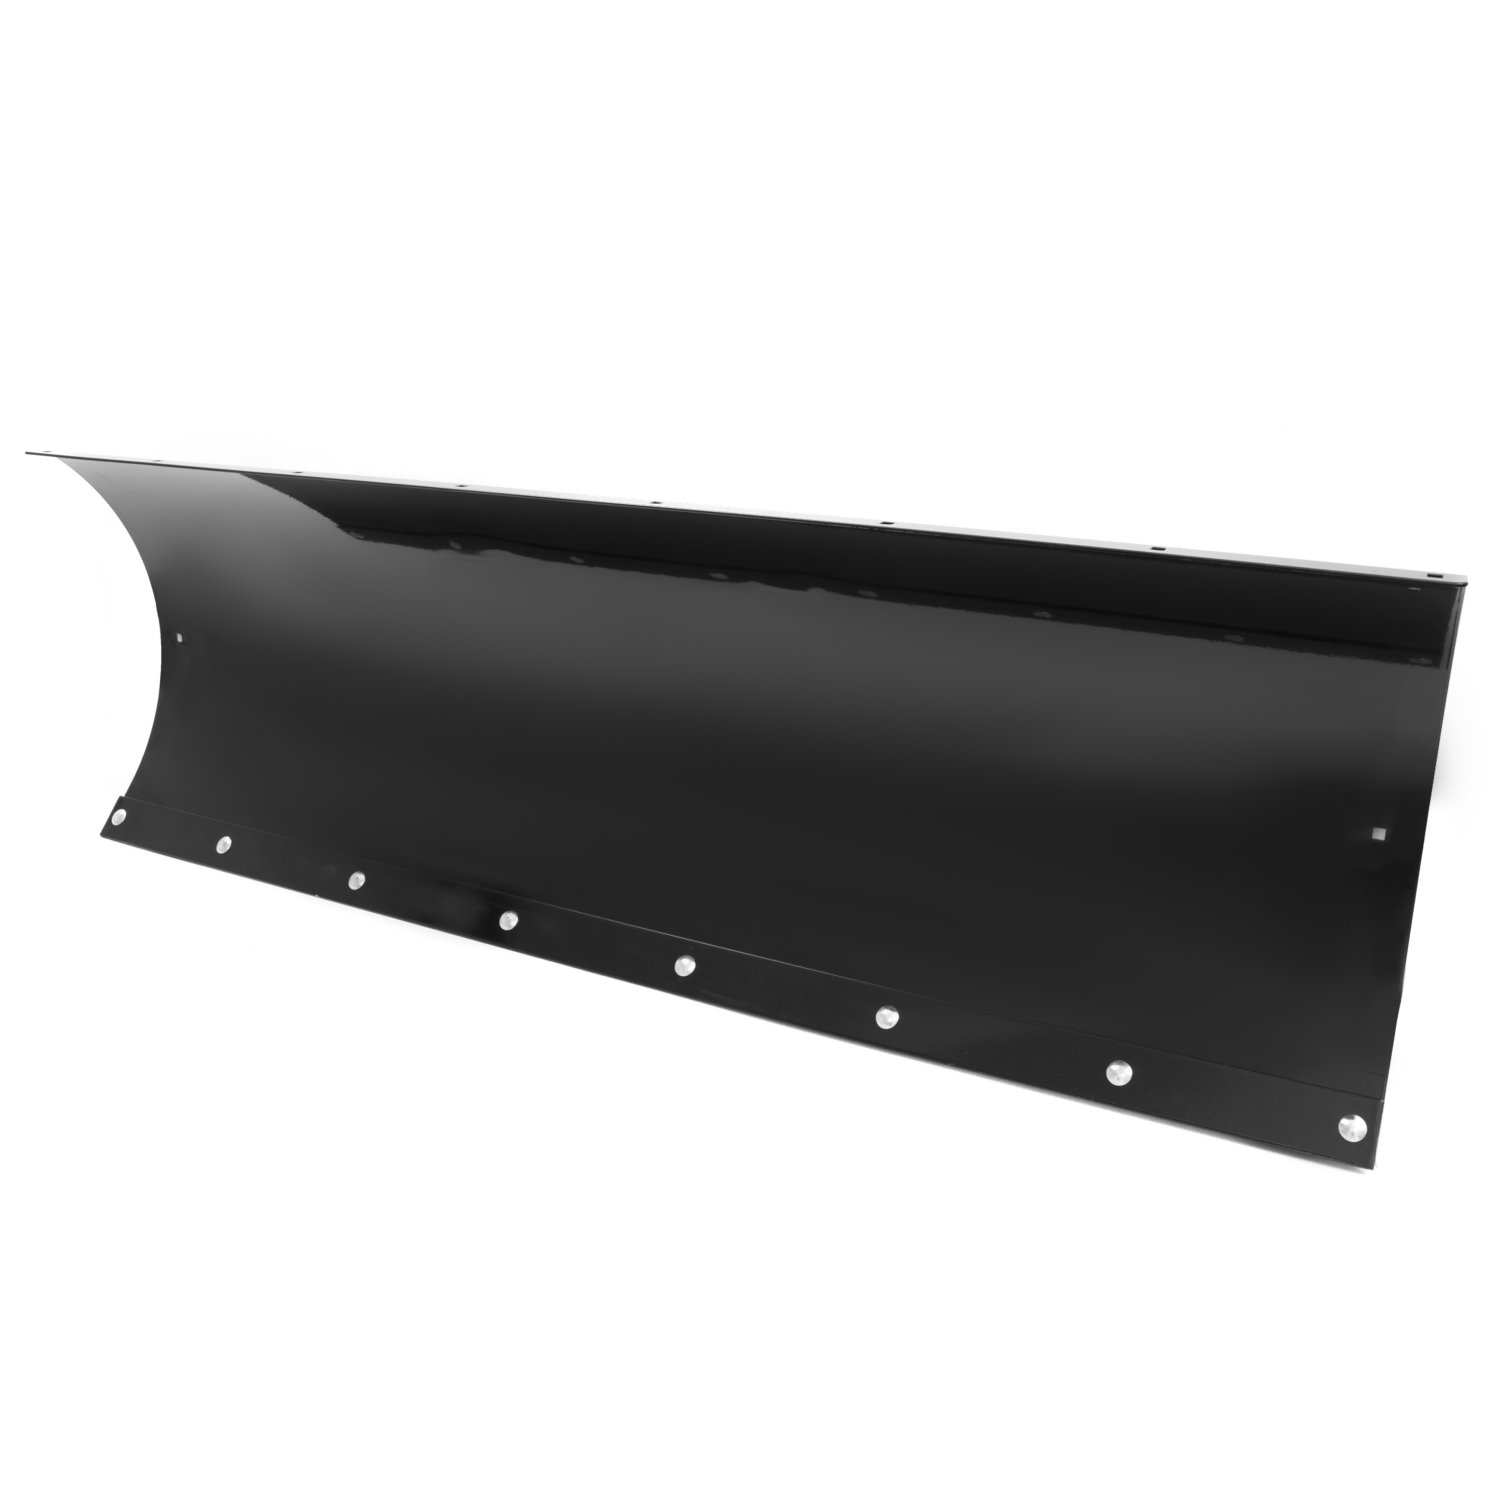 CLICK N GO CNG 1 Snow Plow for ATV & UTV Black 172272